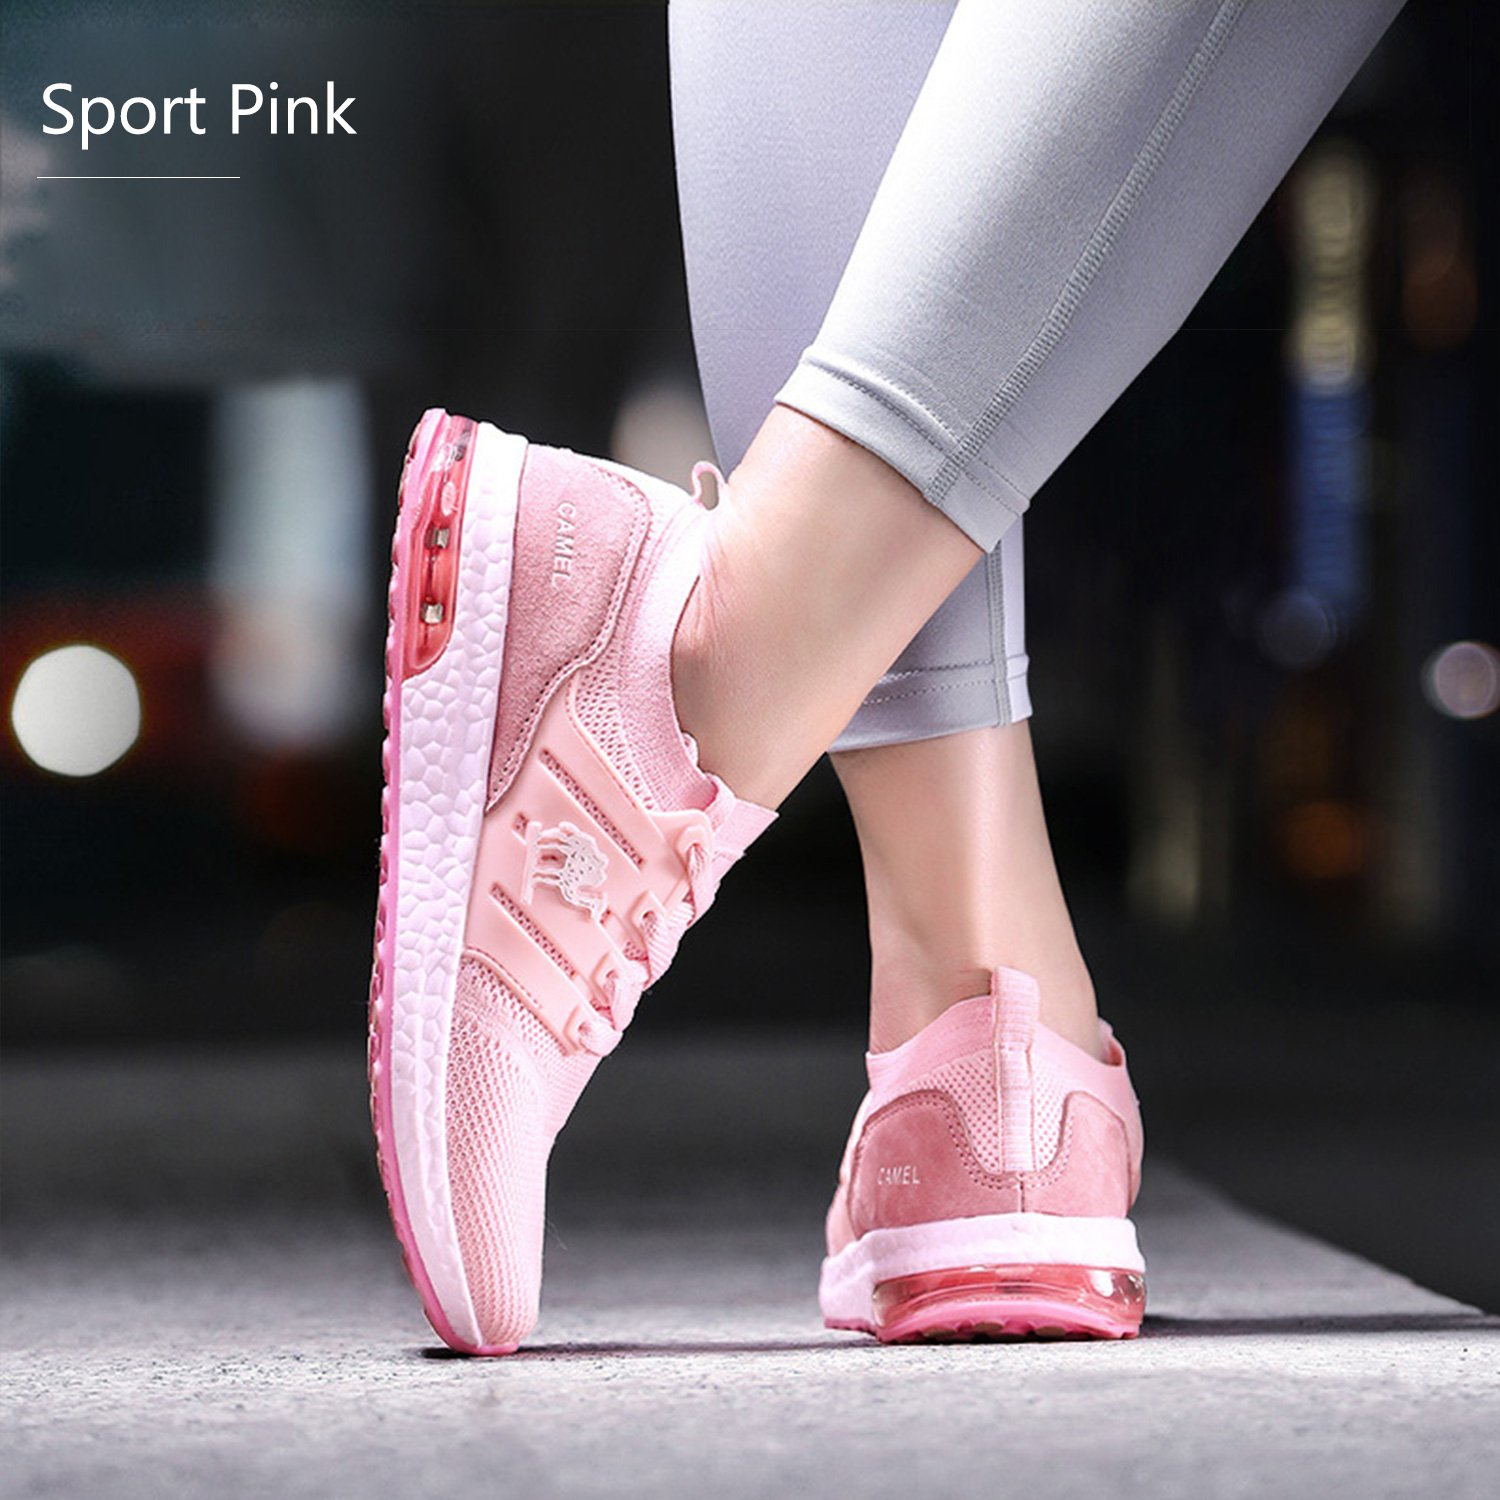 Camel Women's Trail Running Shoes, Lightweight Shockproof Fashion Gym Sports Athletic Sneakers for Gym Fashion B07BS82RTX 6 US|Pink 9c4f0f